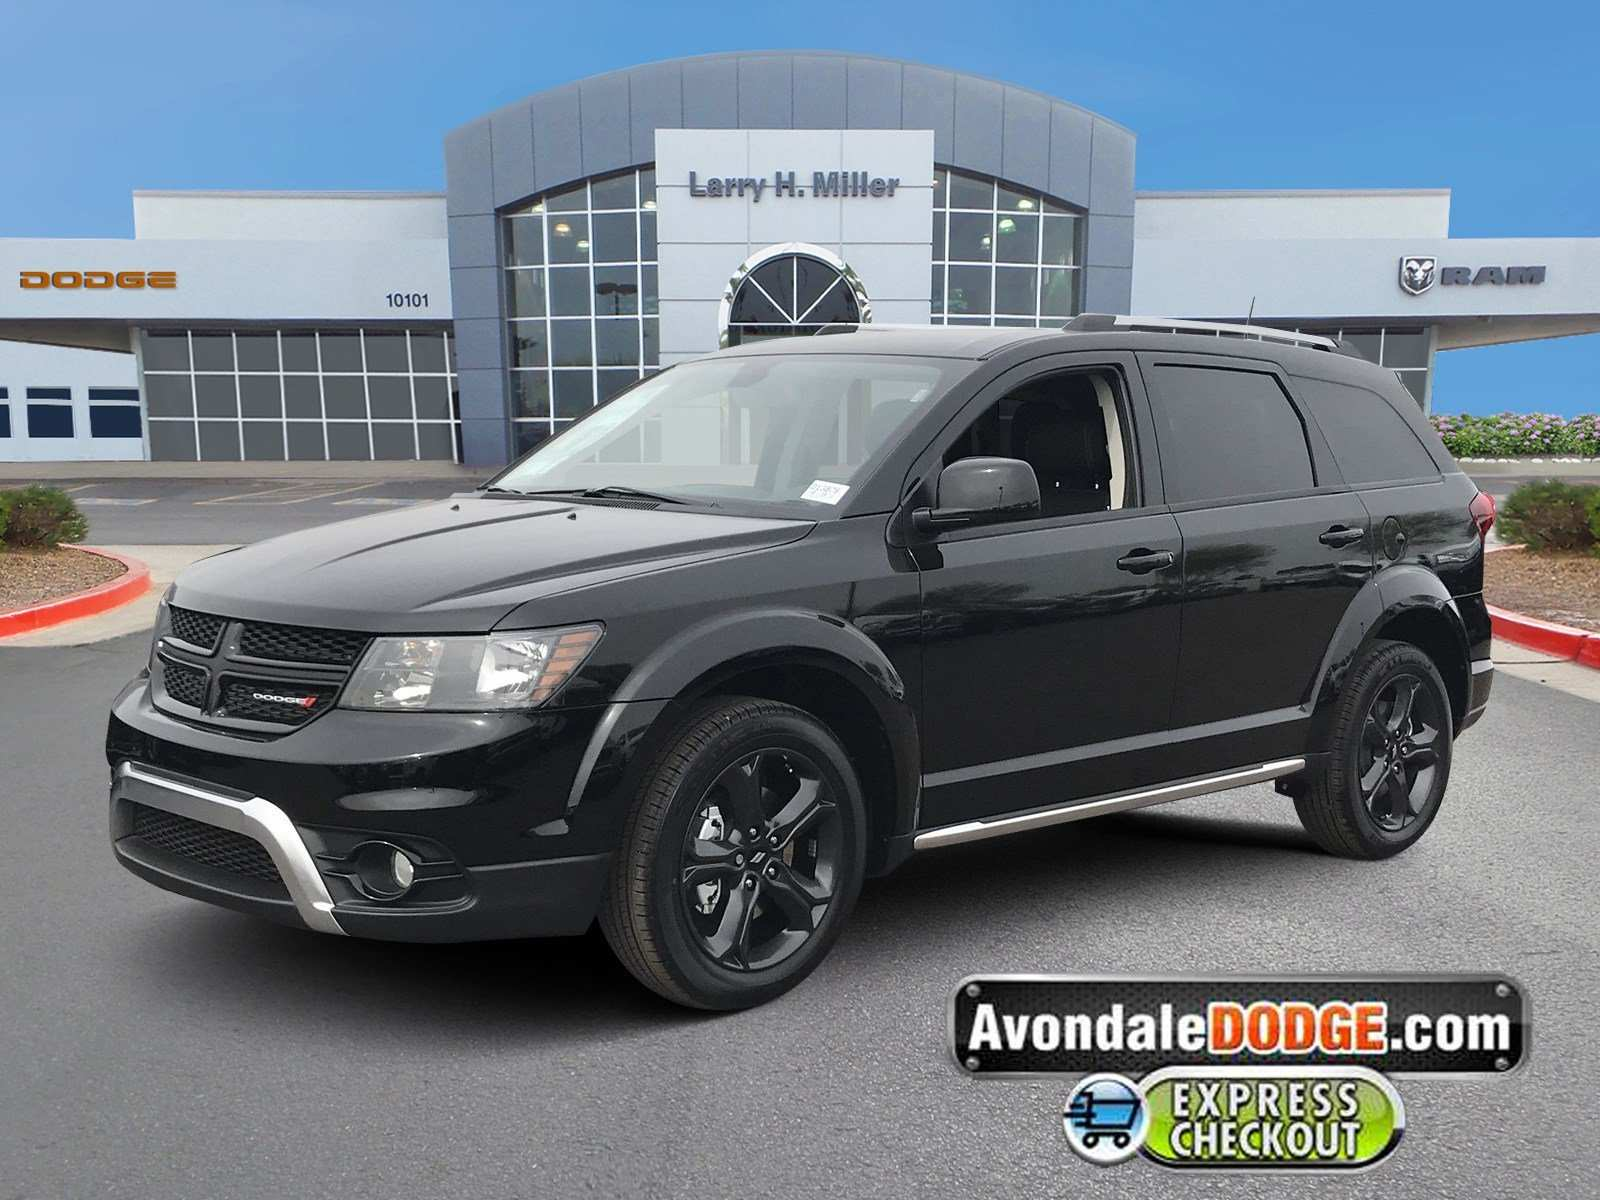 98 The 2019 Dodge Journey Price And Review